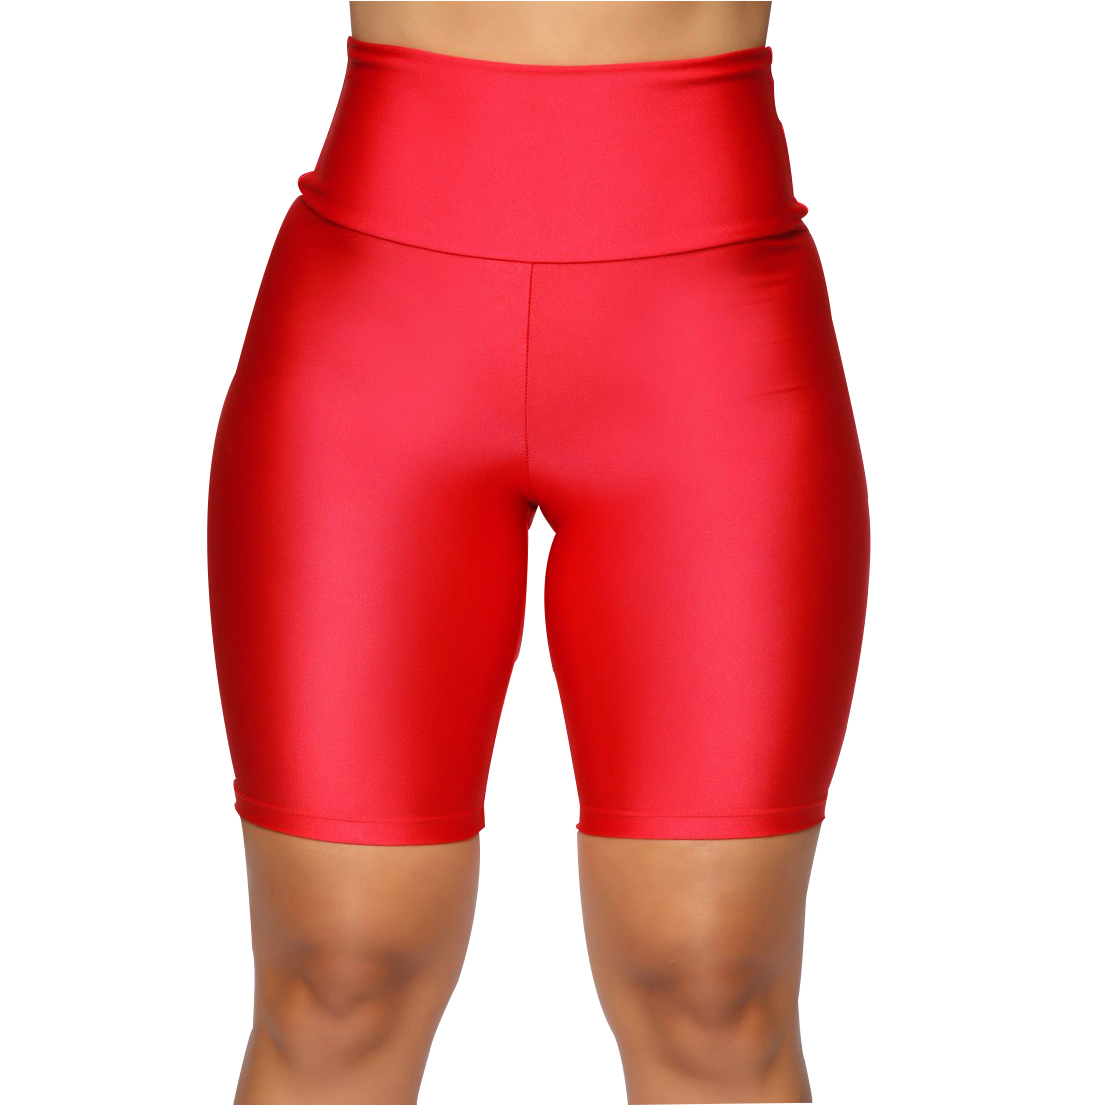 Hb0dab9c9ceae47a89b82972c0256096eF - Womens Plain Sports Gym Cycling Skinny Fit High Waist Shorts Lady Summer Casual Solid Basic Stretchy Bodycon Short Pants